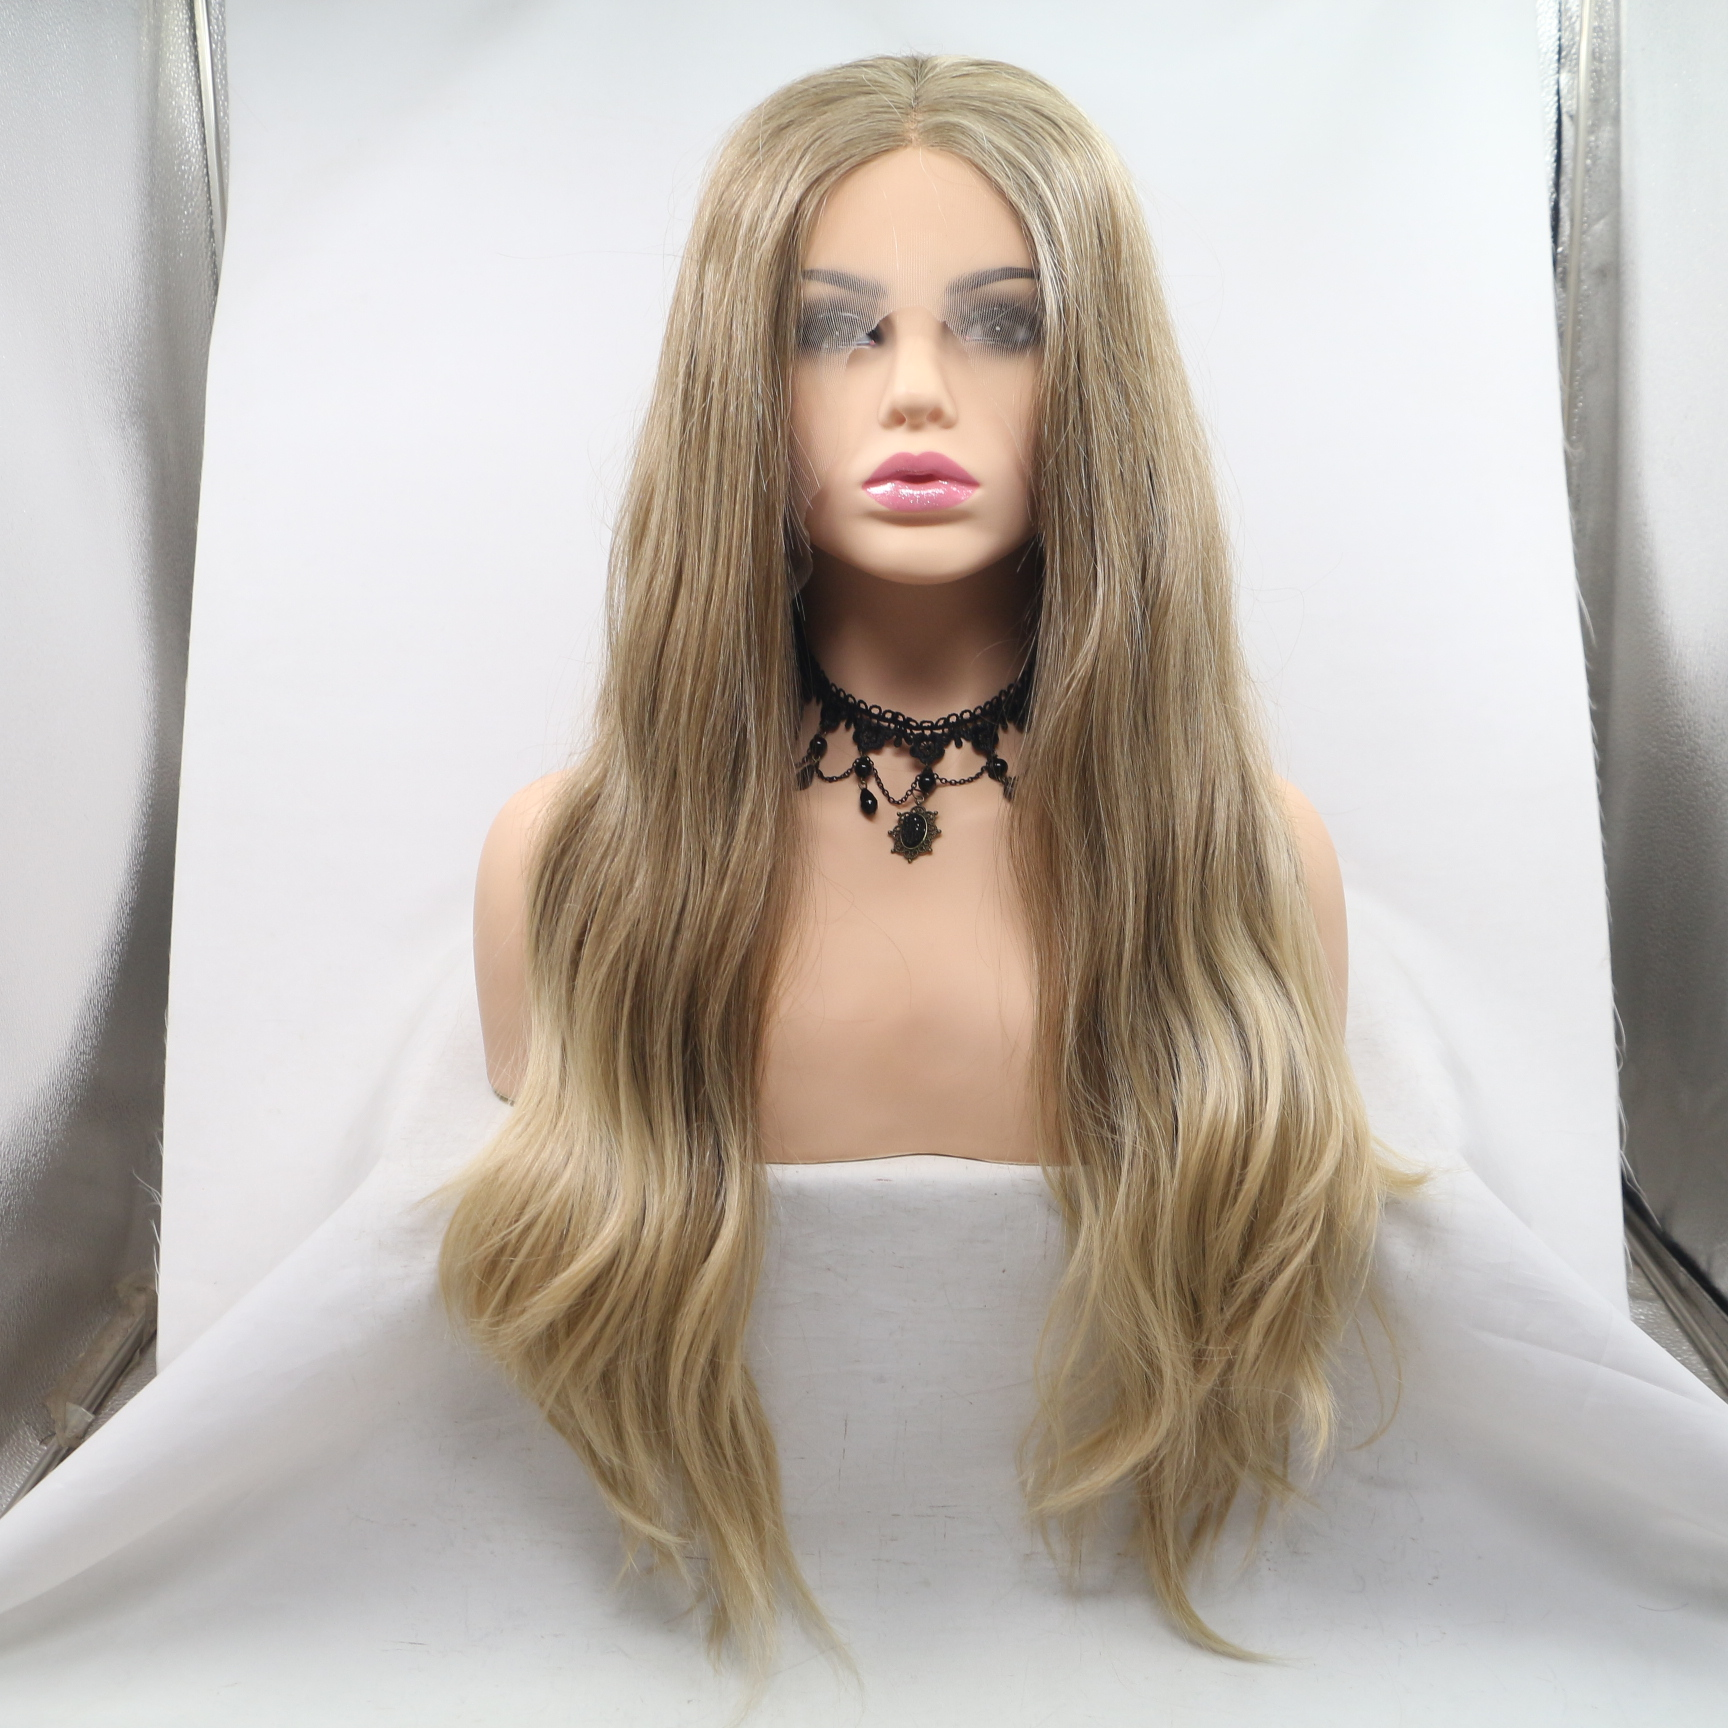 Real human hair natural hair dark golden most popular color in USA wig WK229